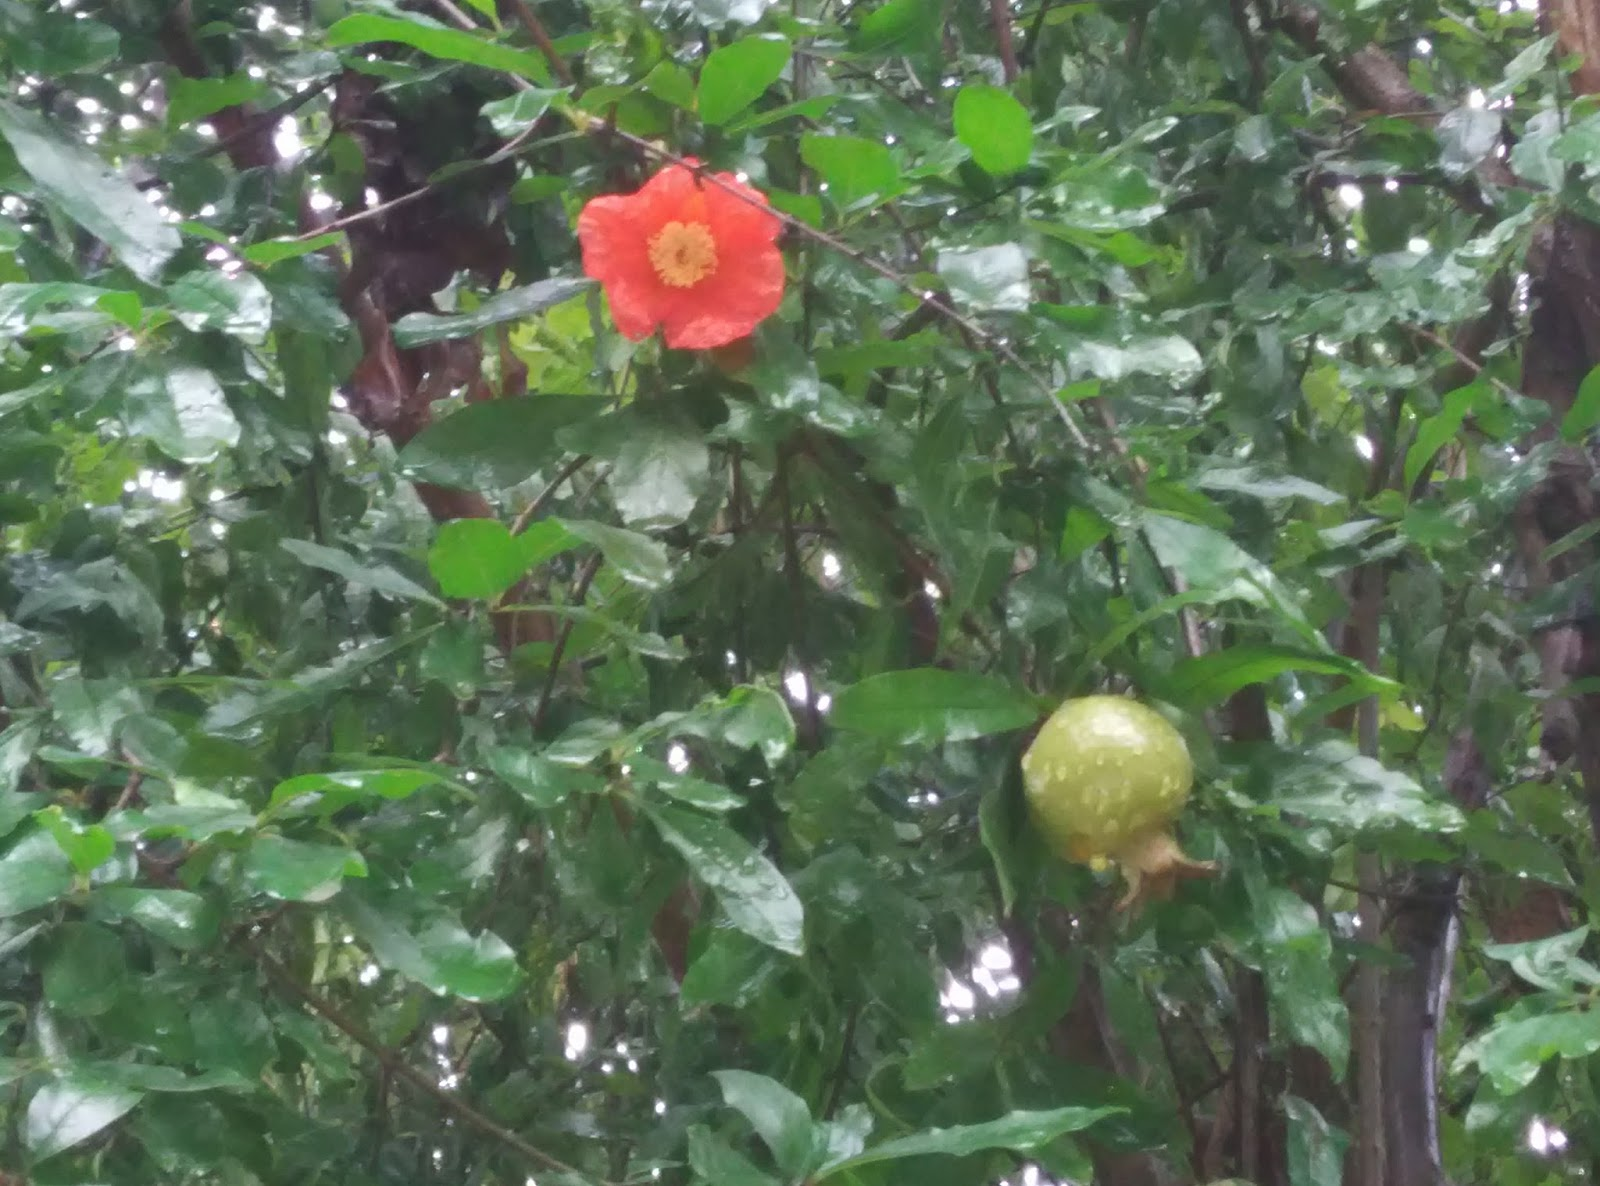 Visit Uttrakhand Rare Beautiful Flowers Can U Guess The Second